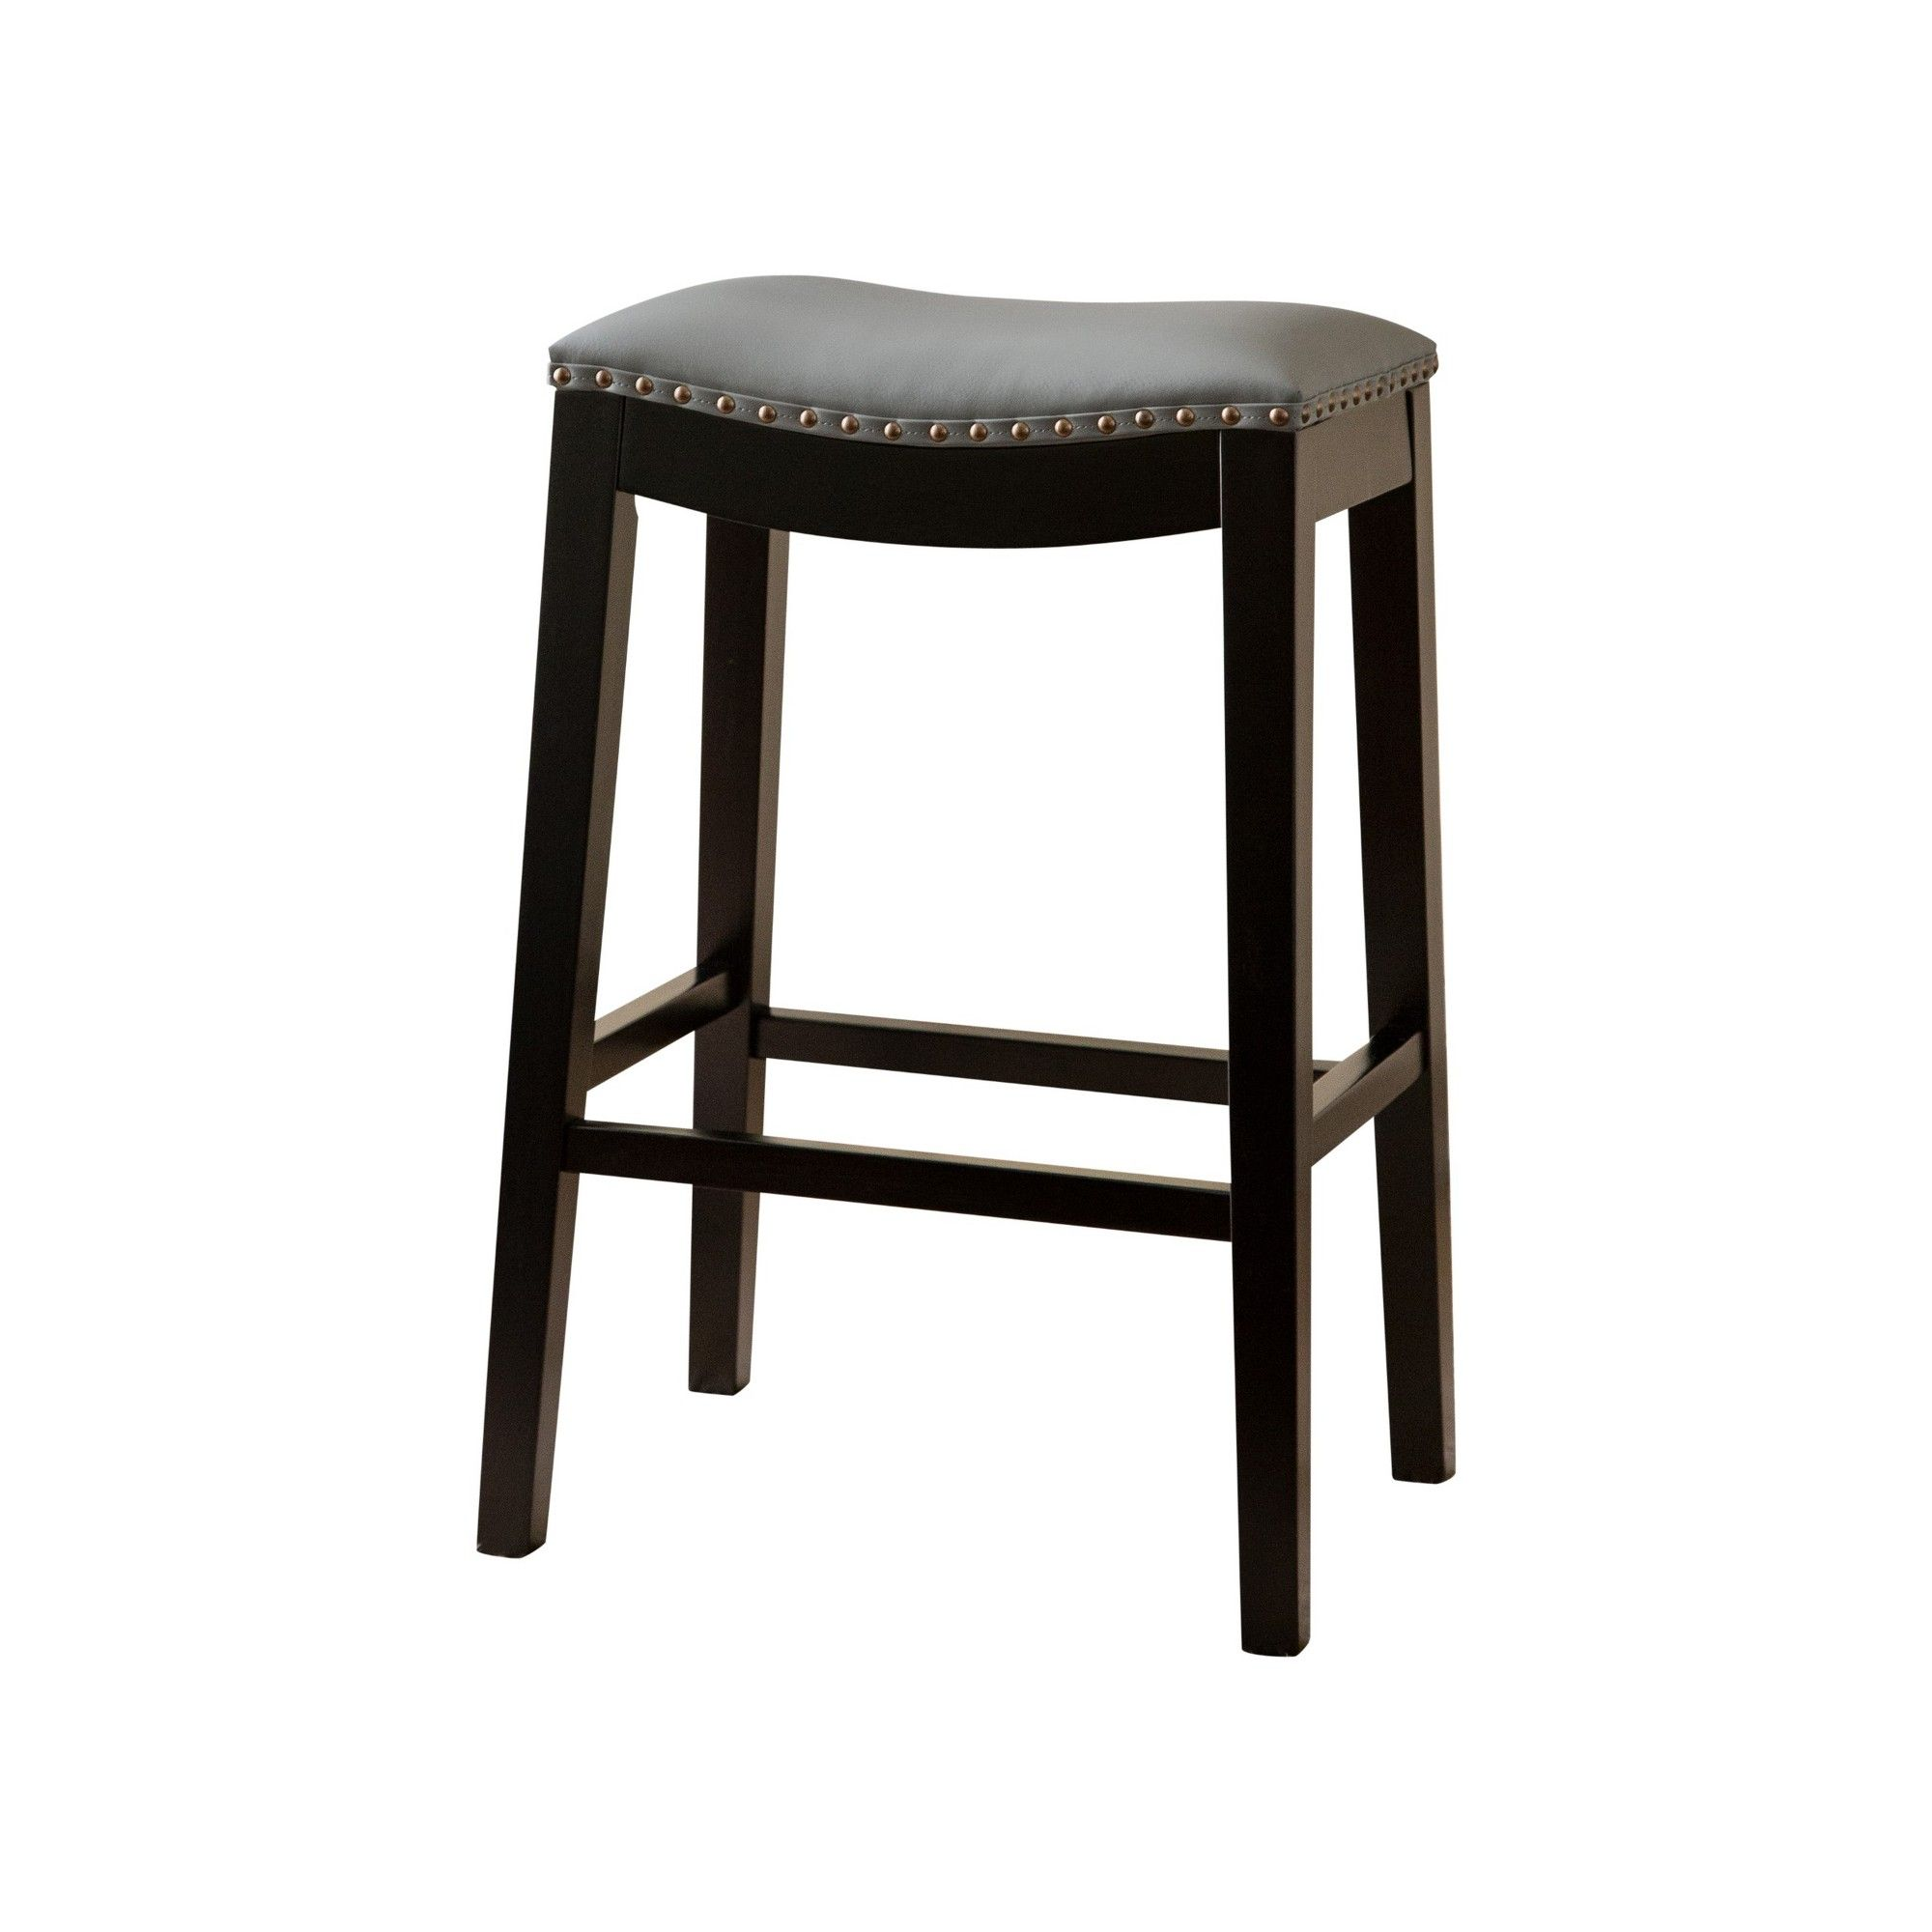 Dakota Bonded Leather Saddle Bar Stool Gray Abbyson Living Adult Unisex Short Bar Stools Bar Stools Saddle Bar Stools